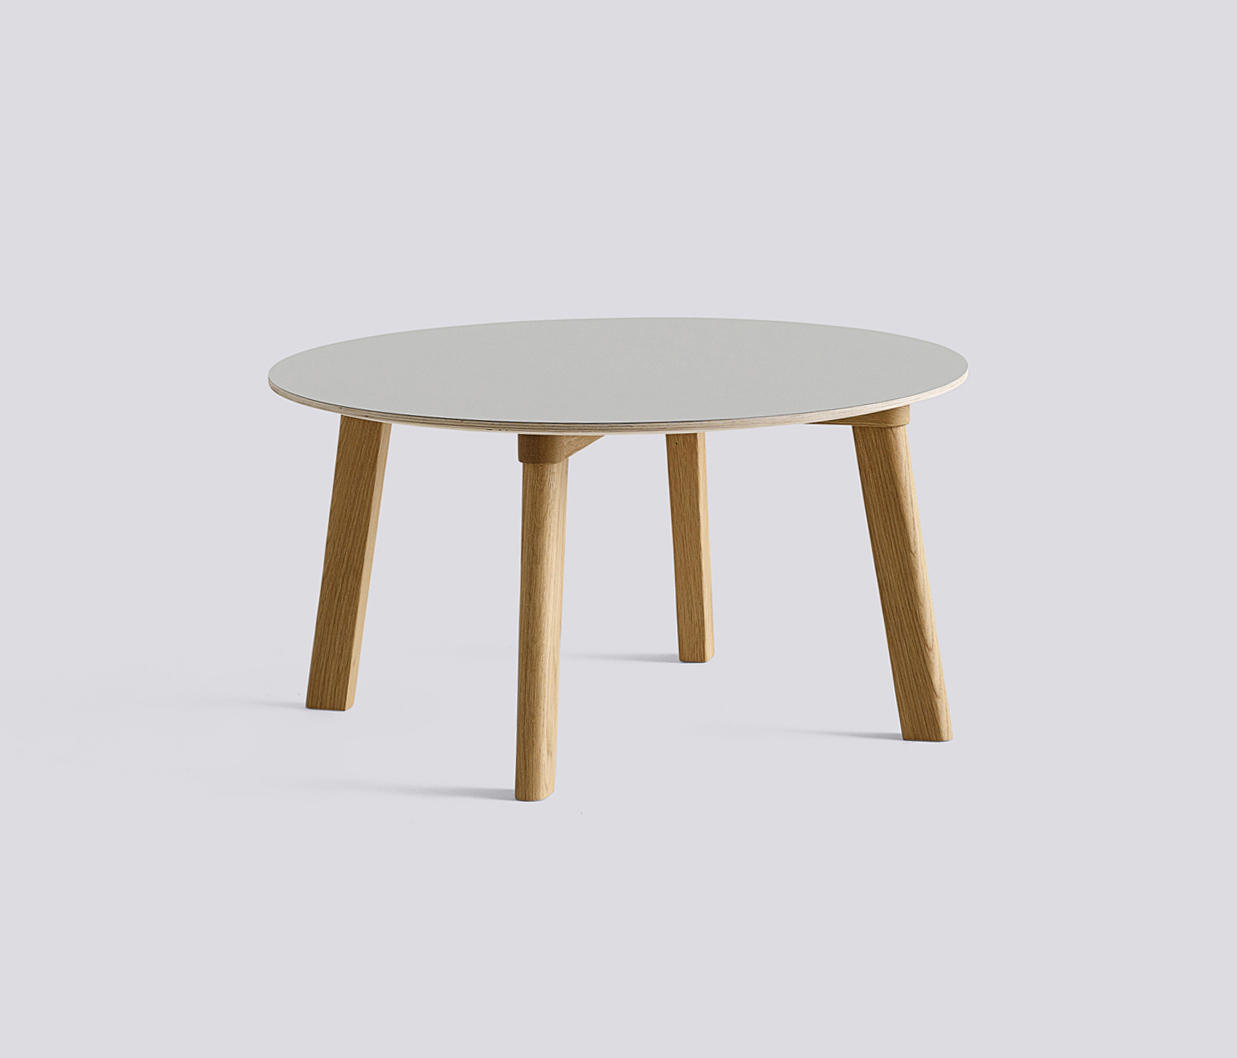 Copenhague Deux Table Cph250 Coffee Tables From Hay